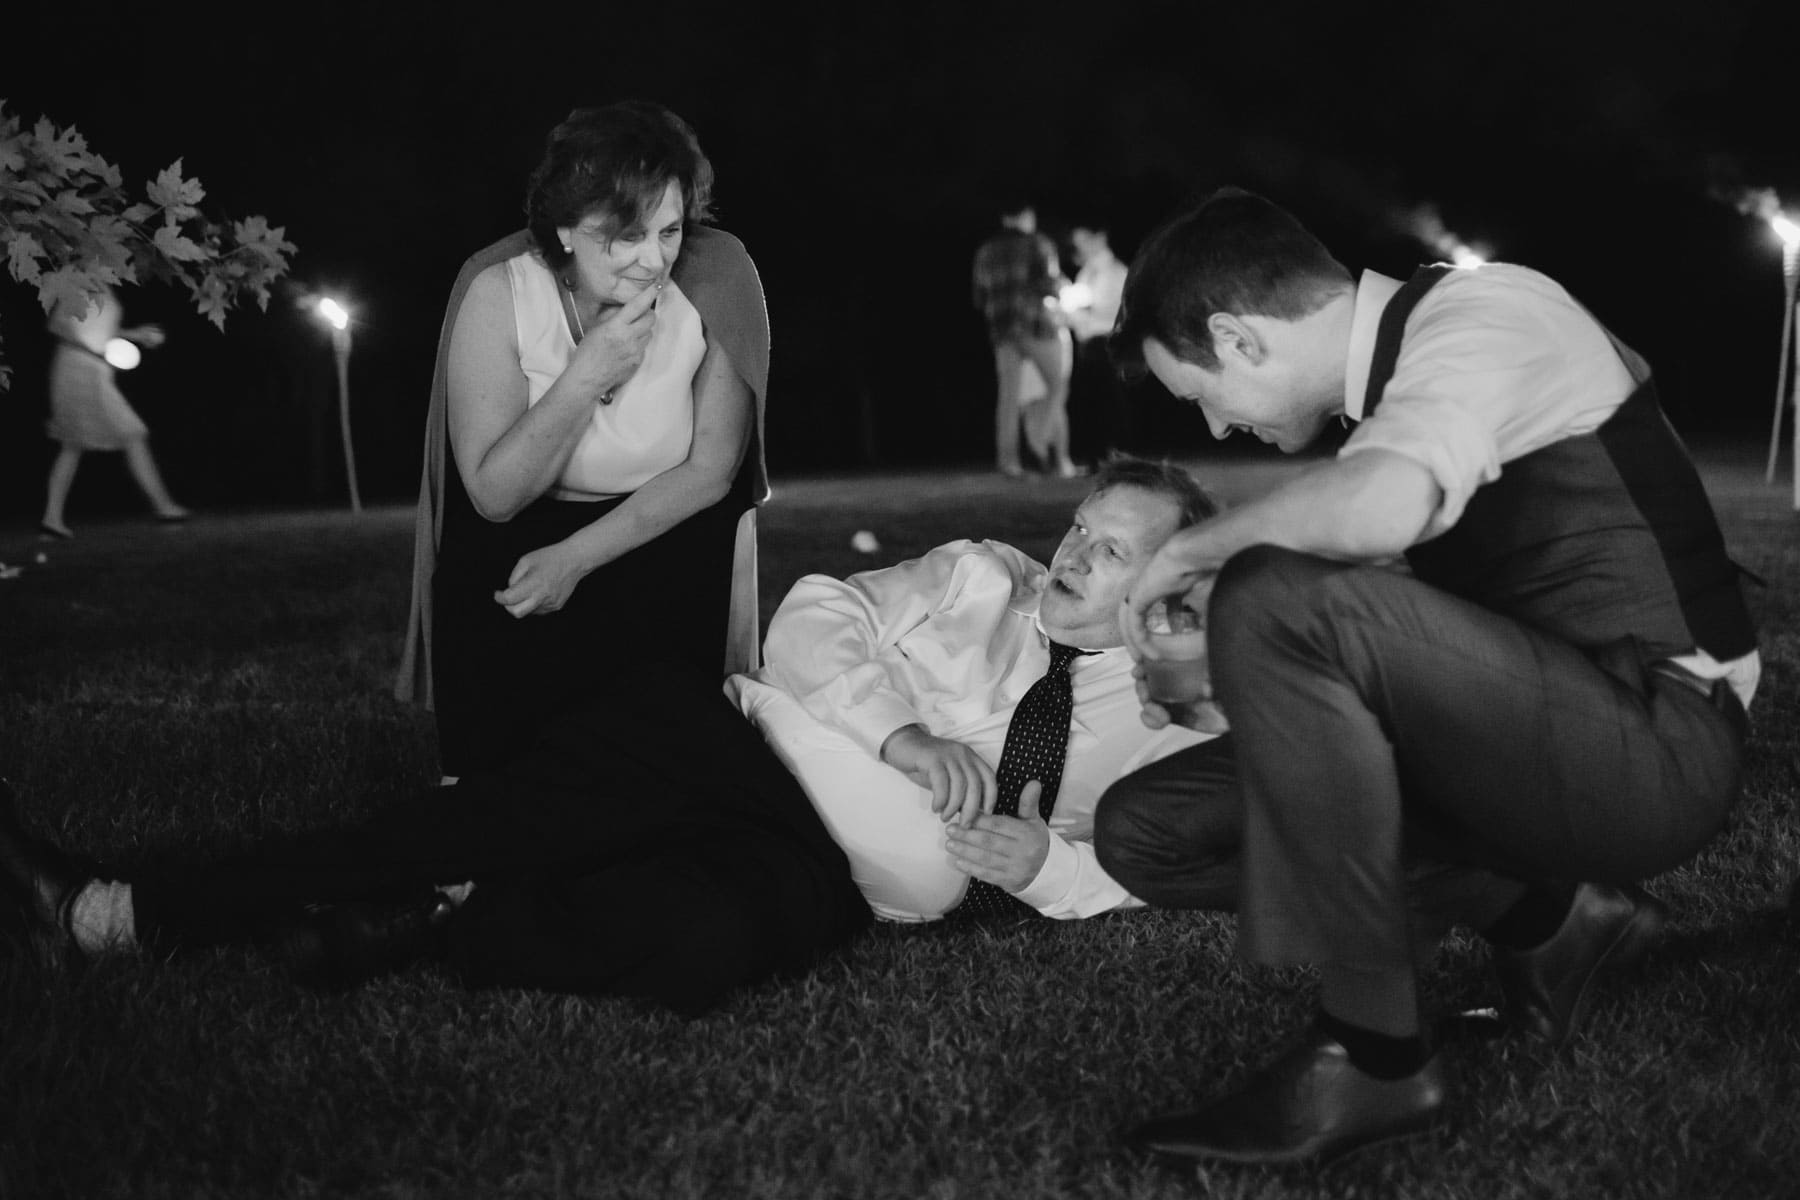 A woman, a man lying on the ground, and the groom, have a conversation in these backyard wedding photos.